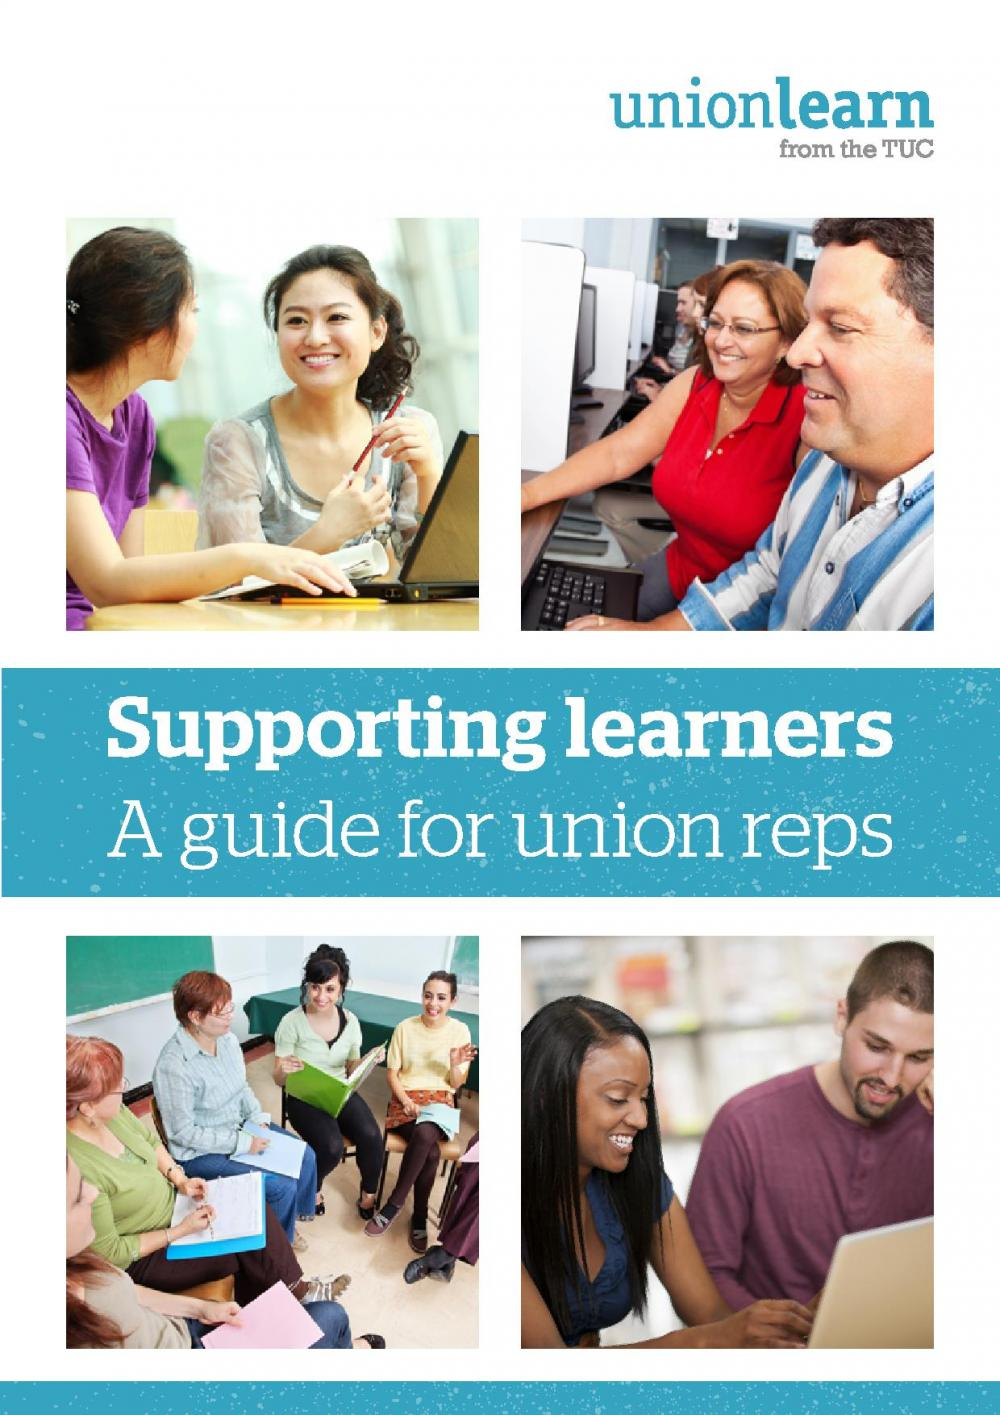 Supporting Learners - a guide for union reps